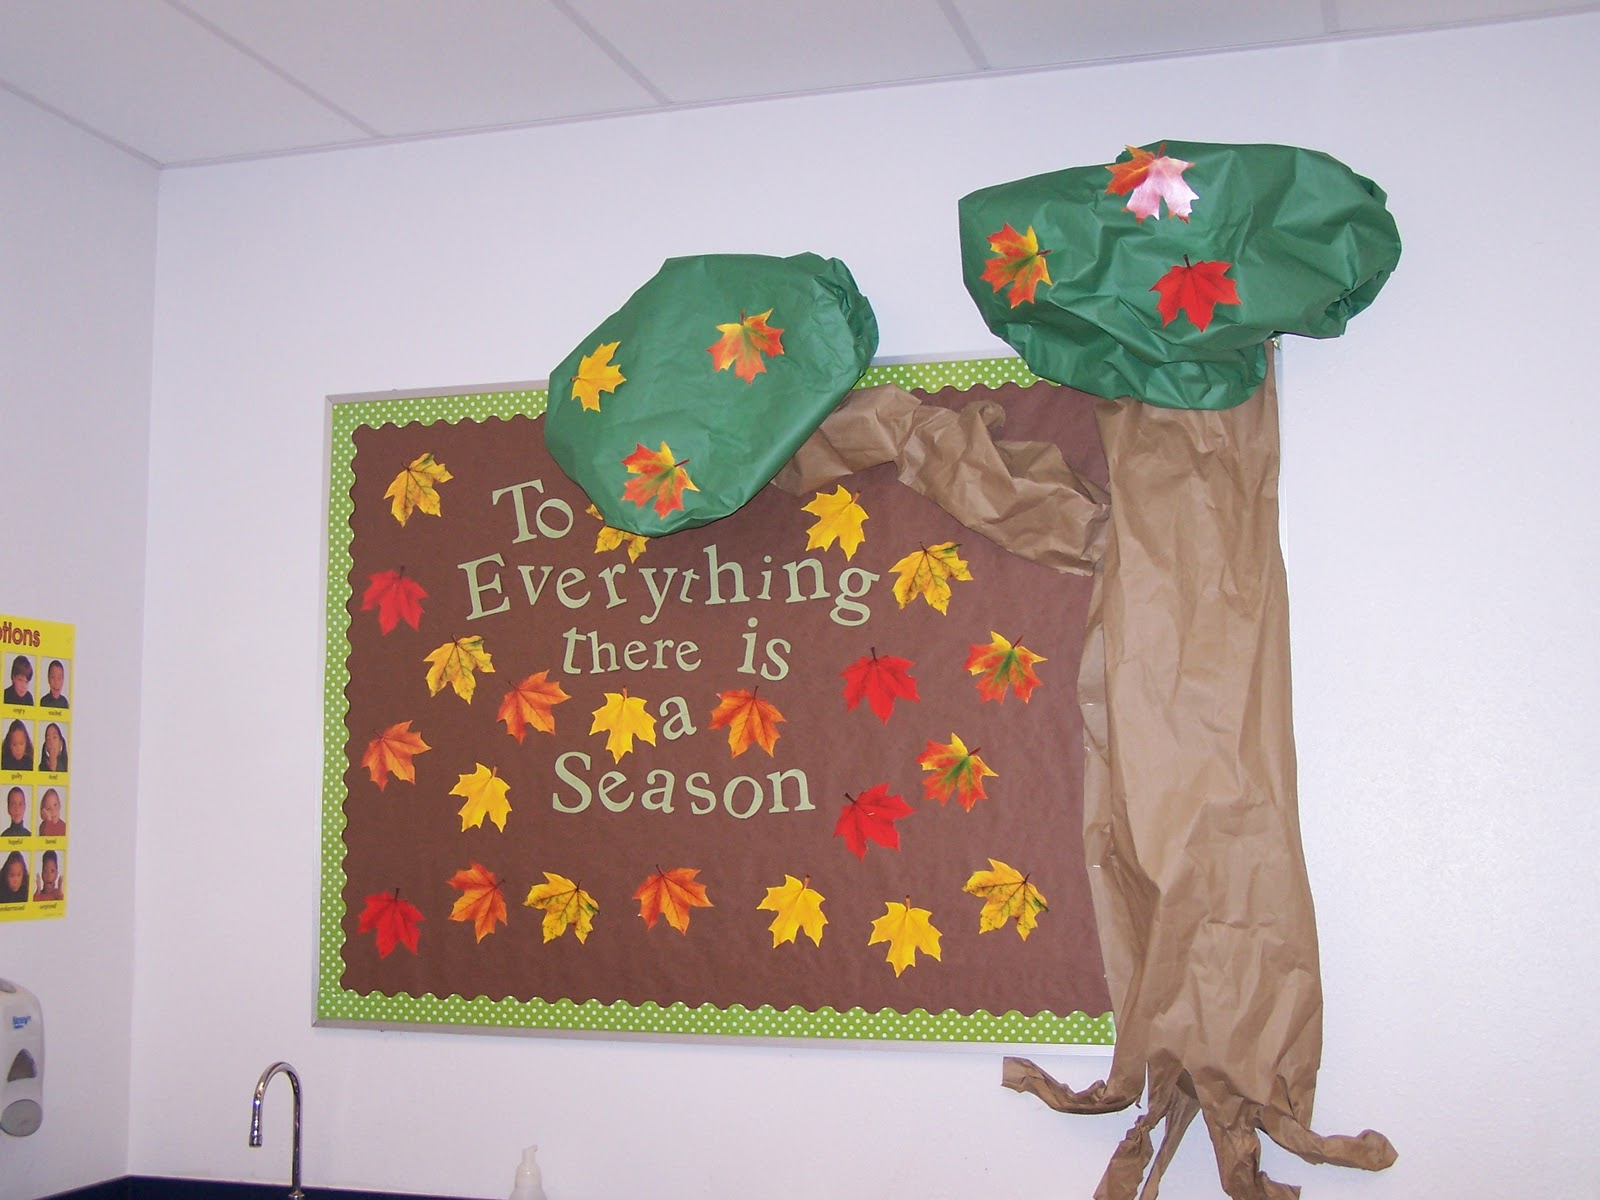 October Bulletin Board Ideas Preschool http://journalinggina.blogspot.com/2010/10/new-bulletin-boards-for-preschool-room.html